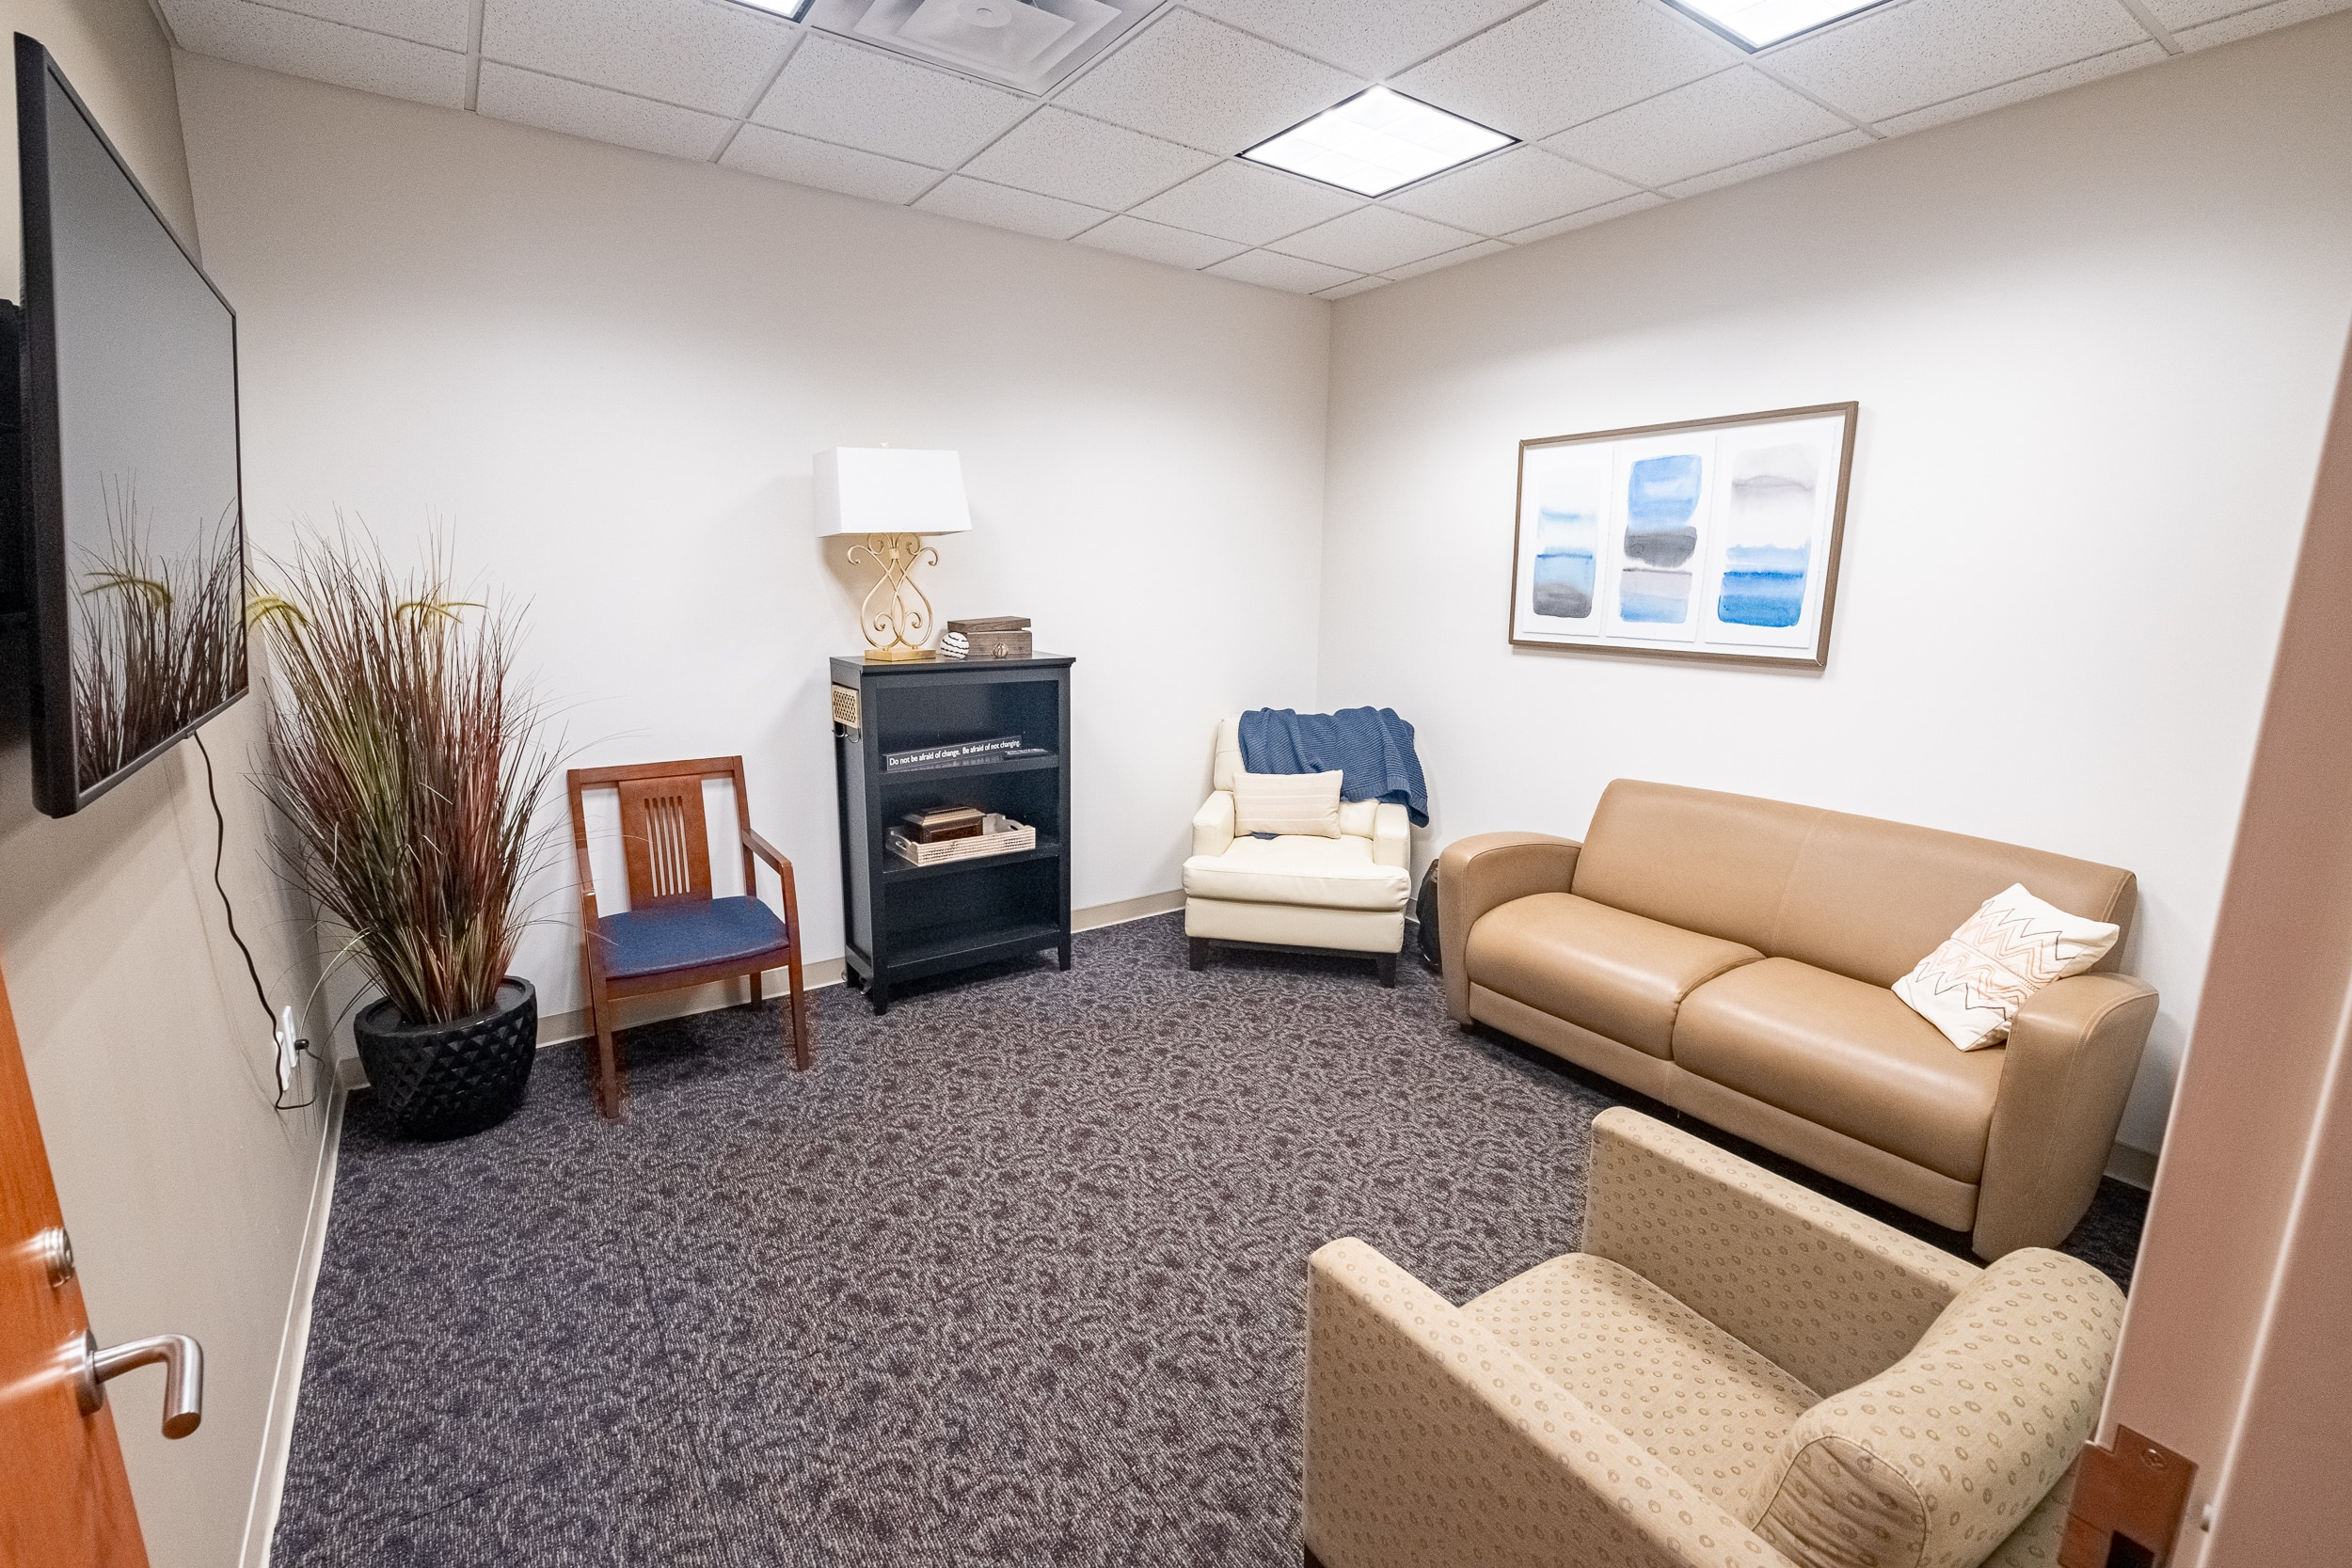 OSS Headquarters Waiting Room. Comfortable looking room with various seating, plant, TV and reading material shelf.